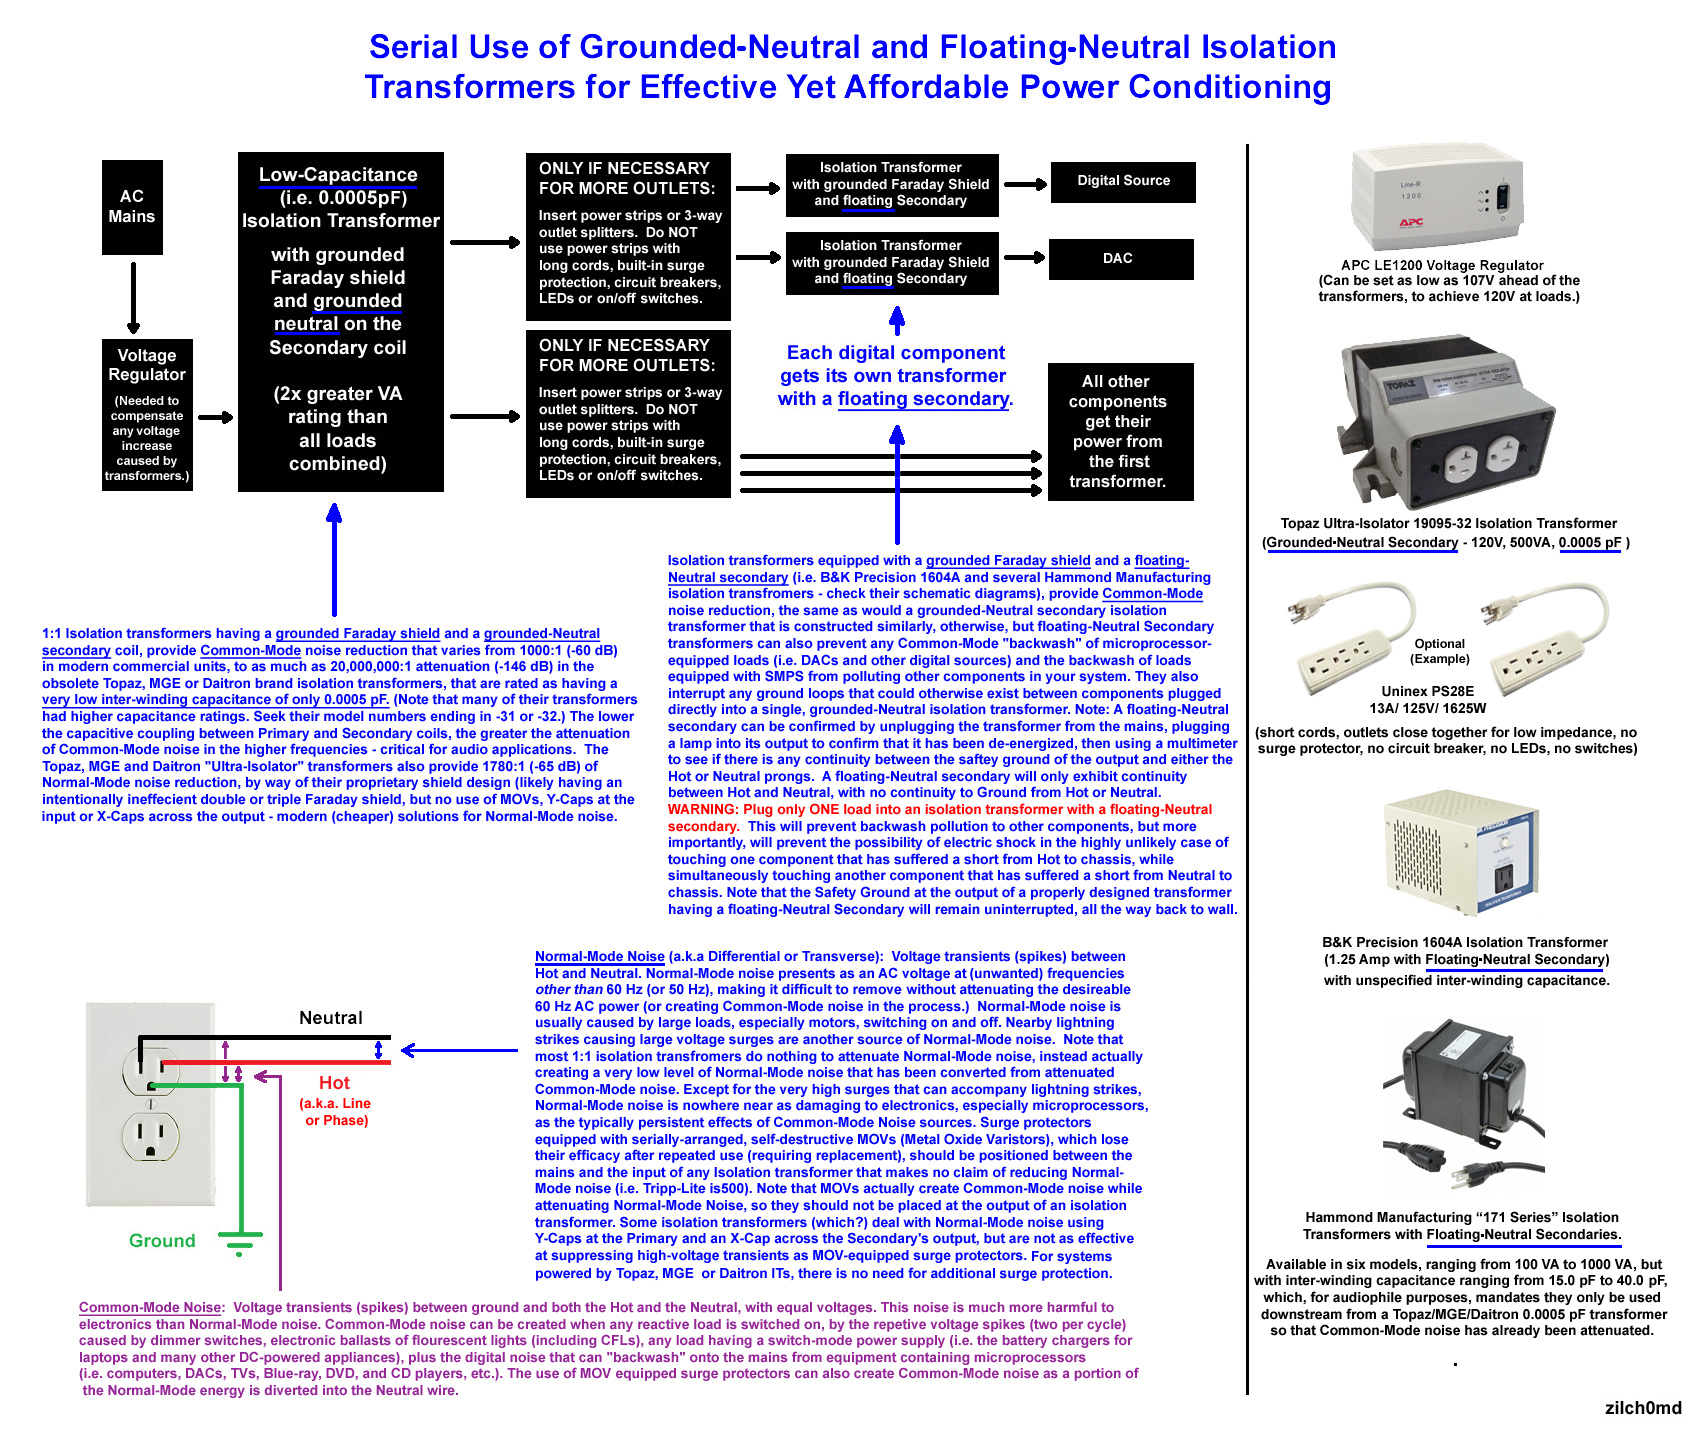 Affordable_Power_Conditioning_with_Serial_Isolation_Transformers_Rev3.jpg